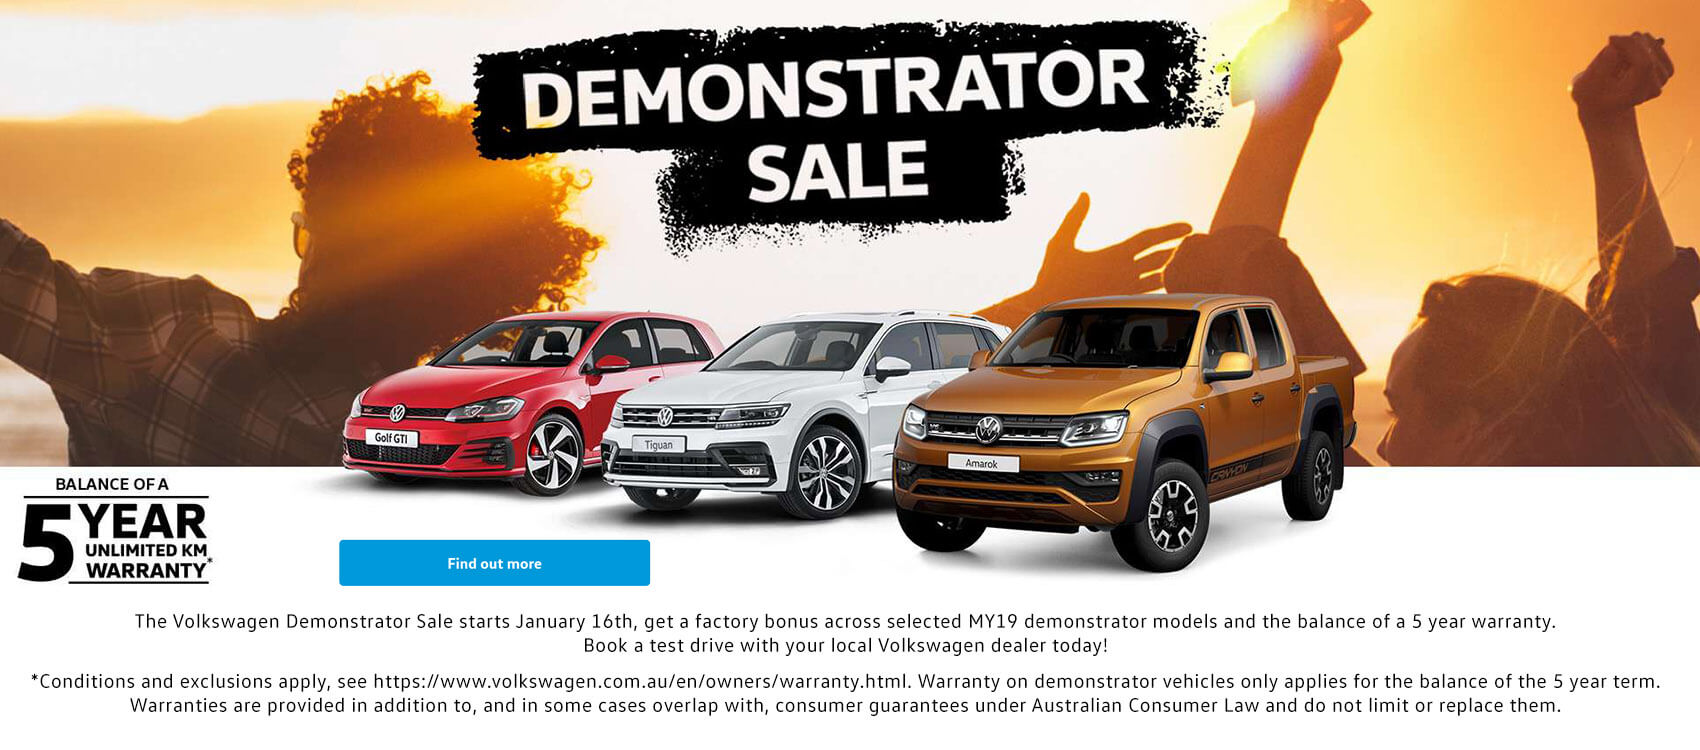 The Volkswagen Demonstrator Sale starts January 16th, get a factory bonus across selected MY19 demonstrator models and the balance of a 5 year warranty. Book a test drive with Leichhardt Volkswagen